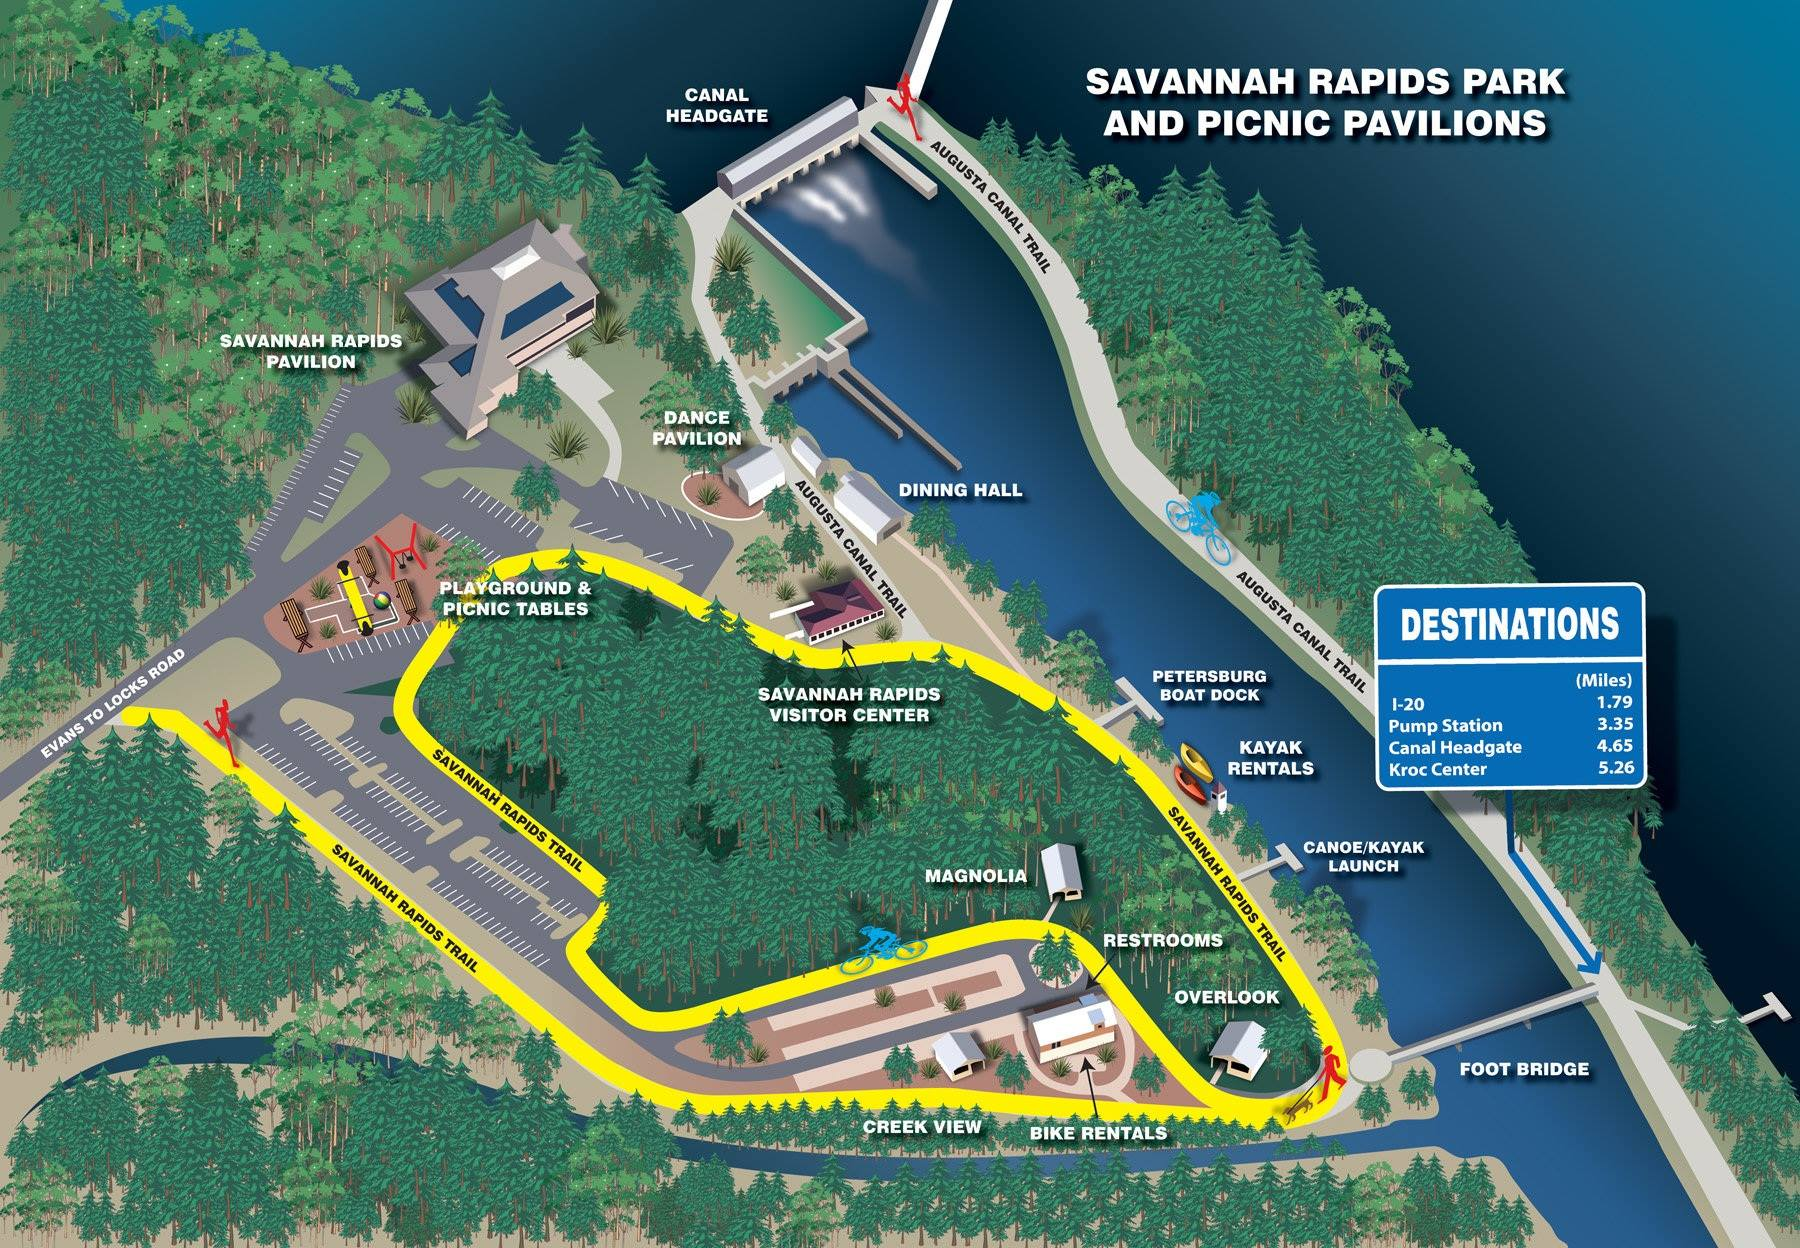 Savannah-Rapids-Park-Map.jpg